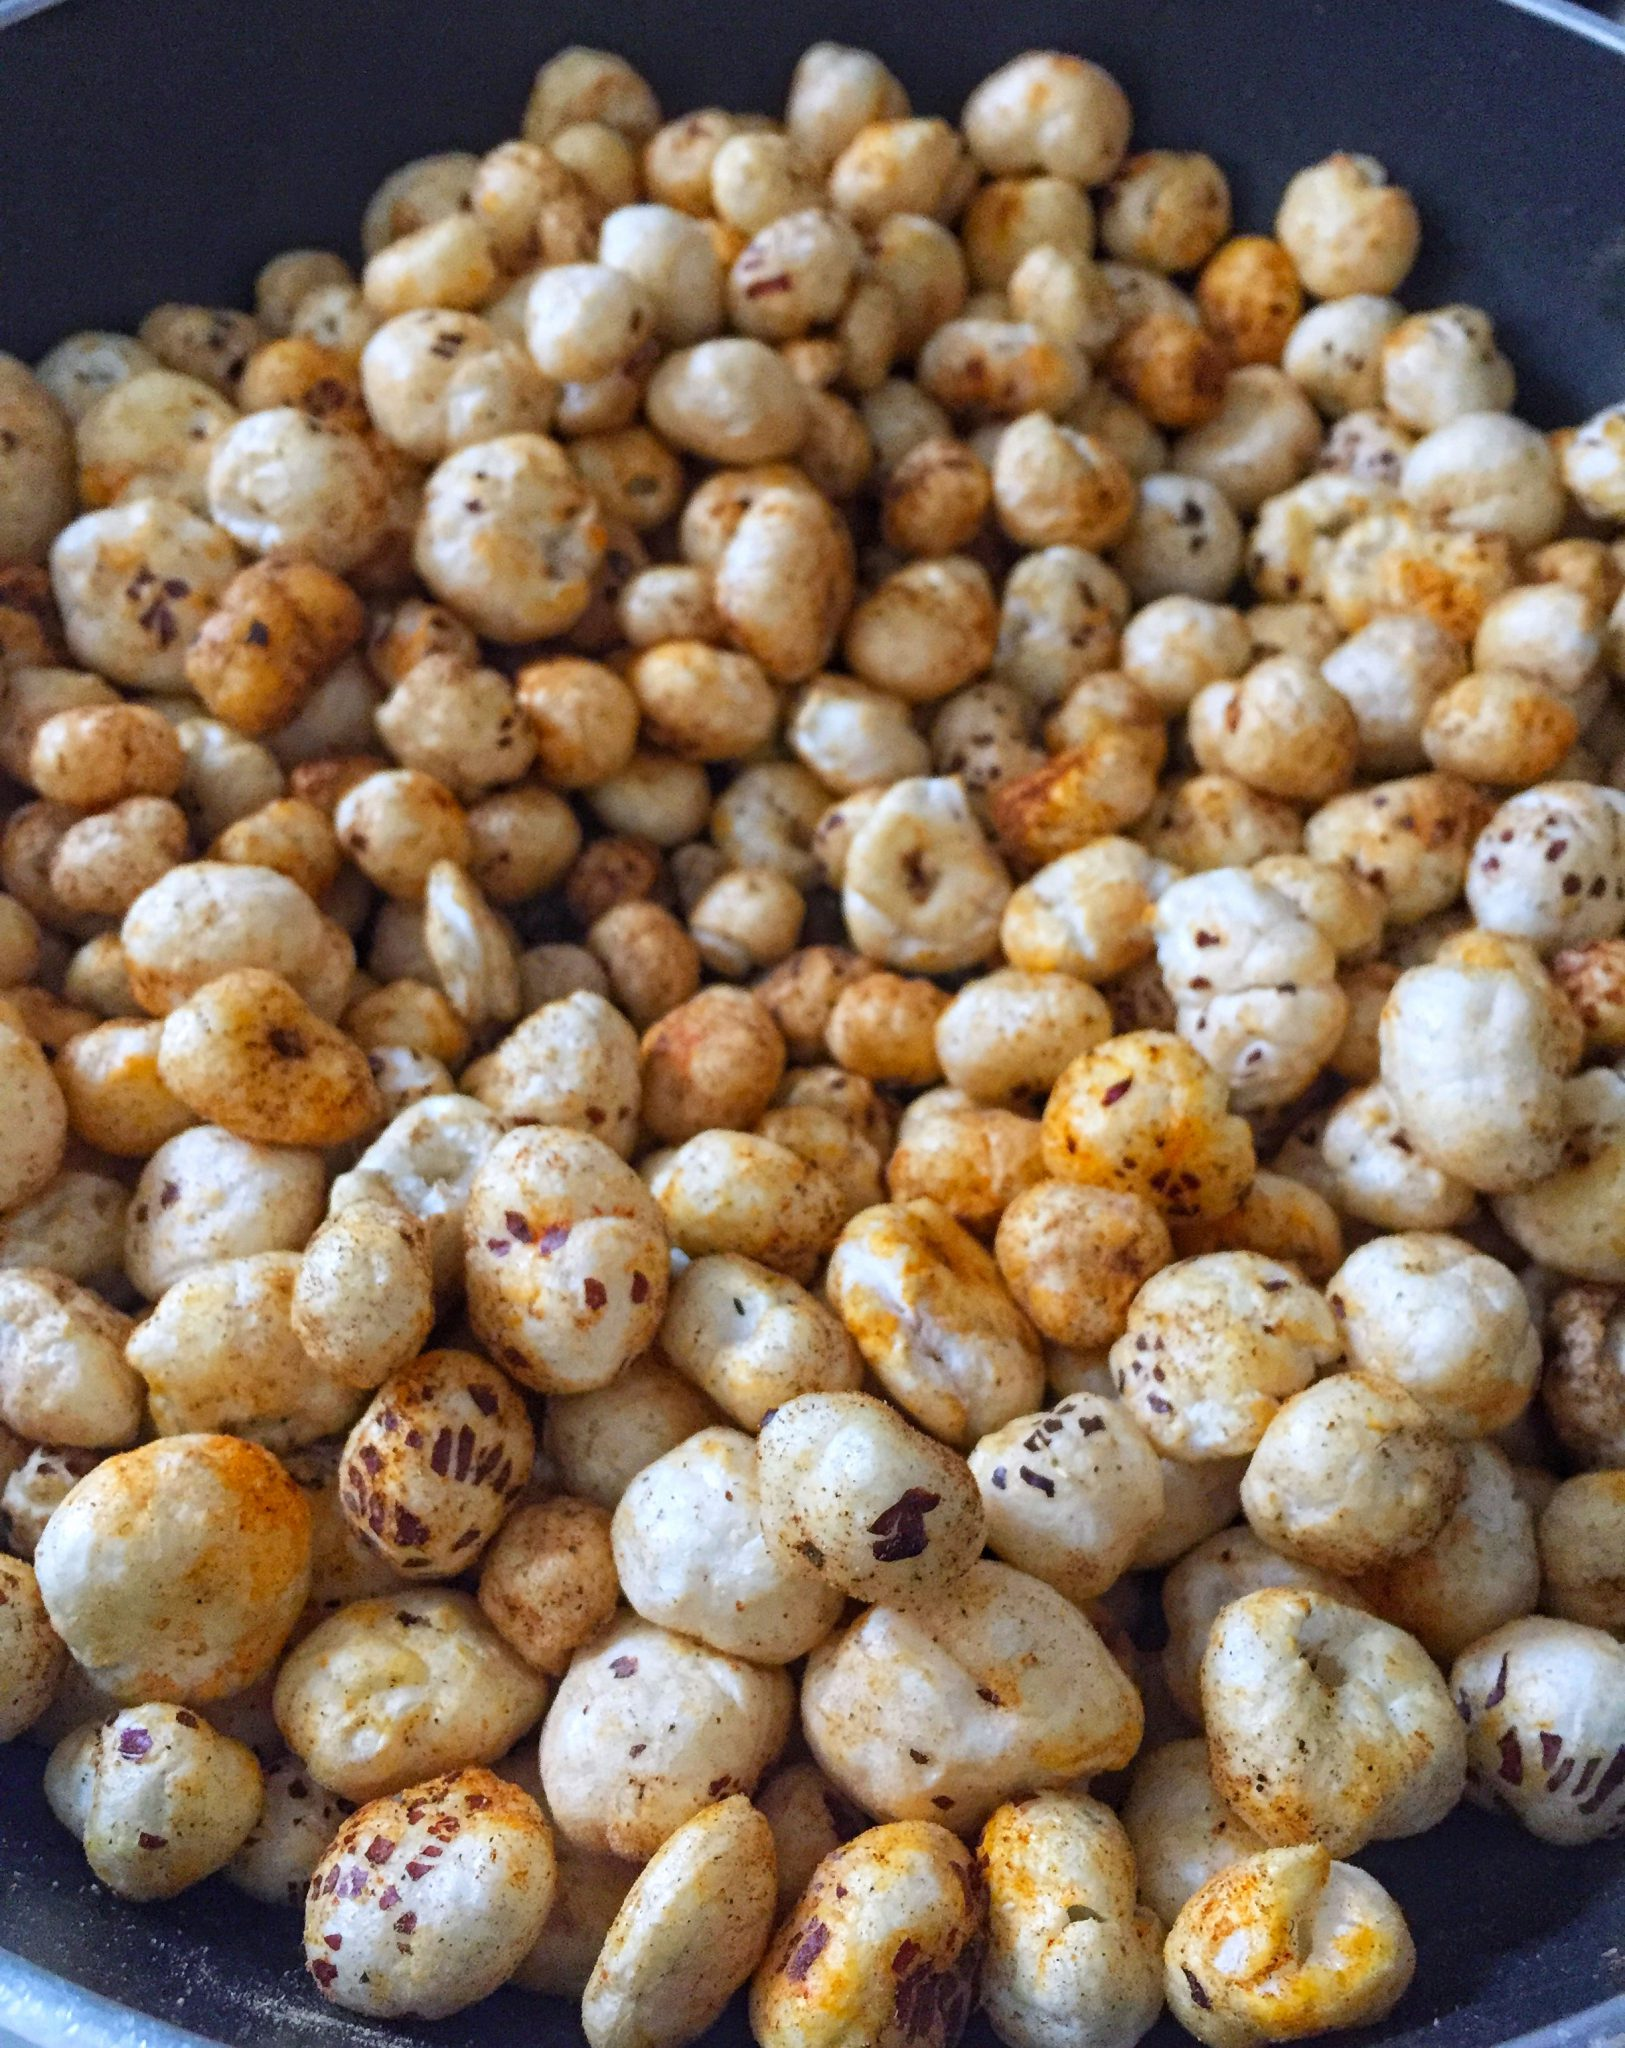 roasted foxnuts